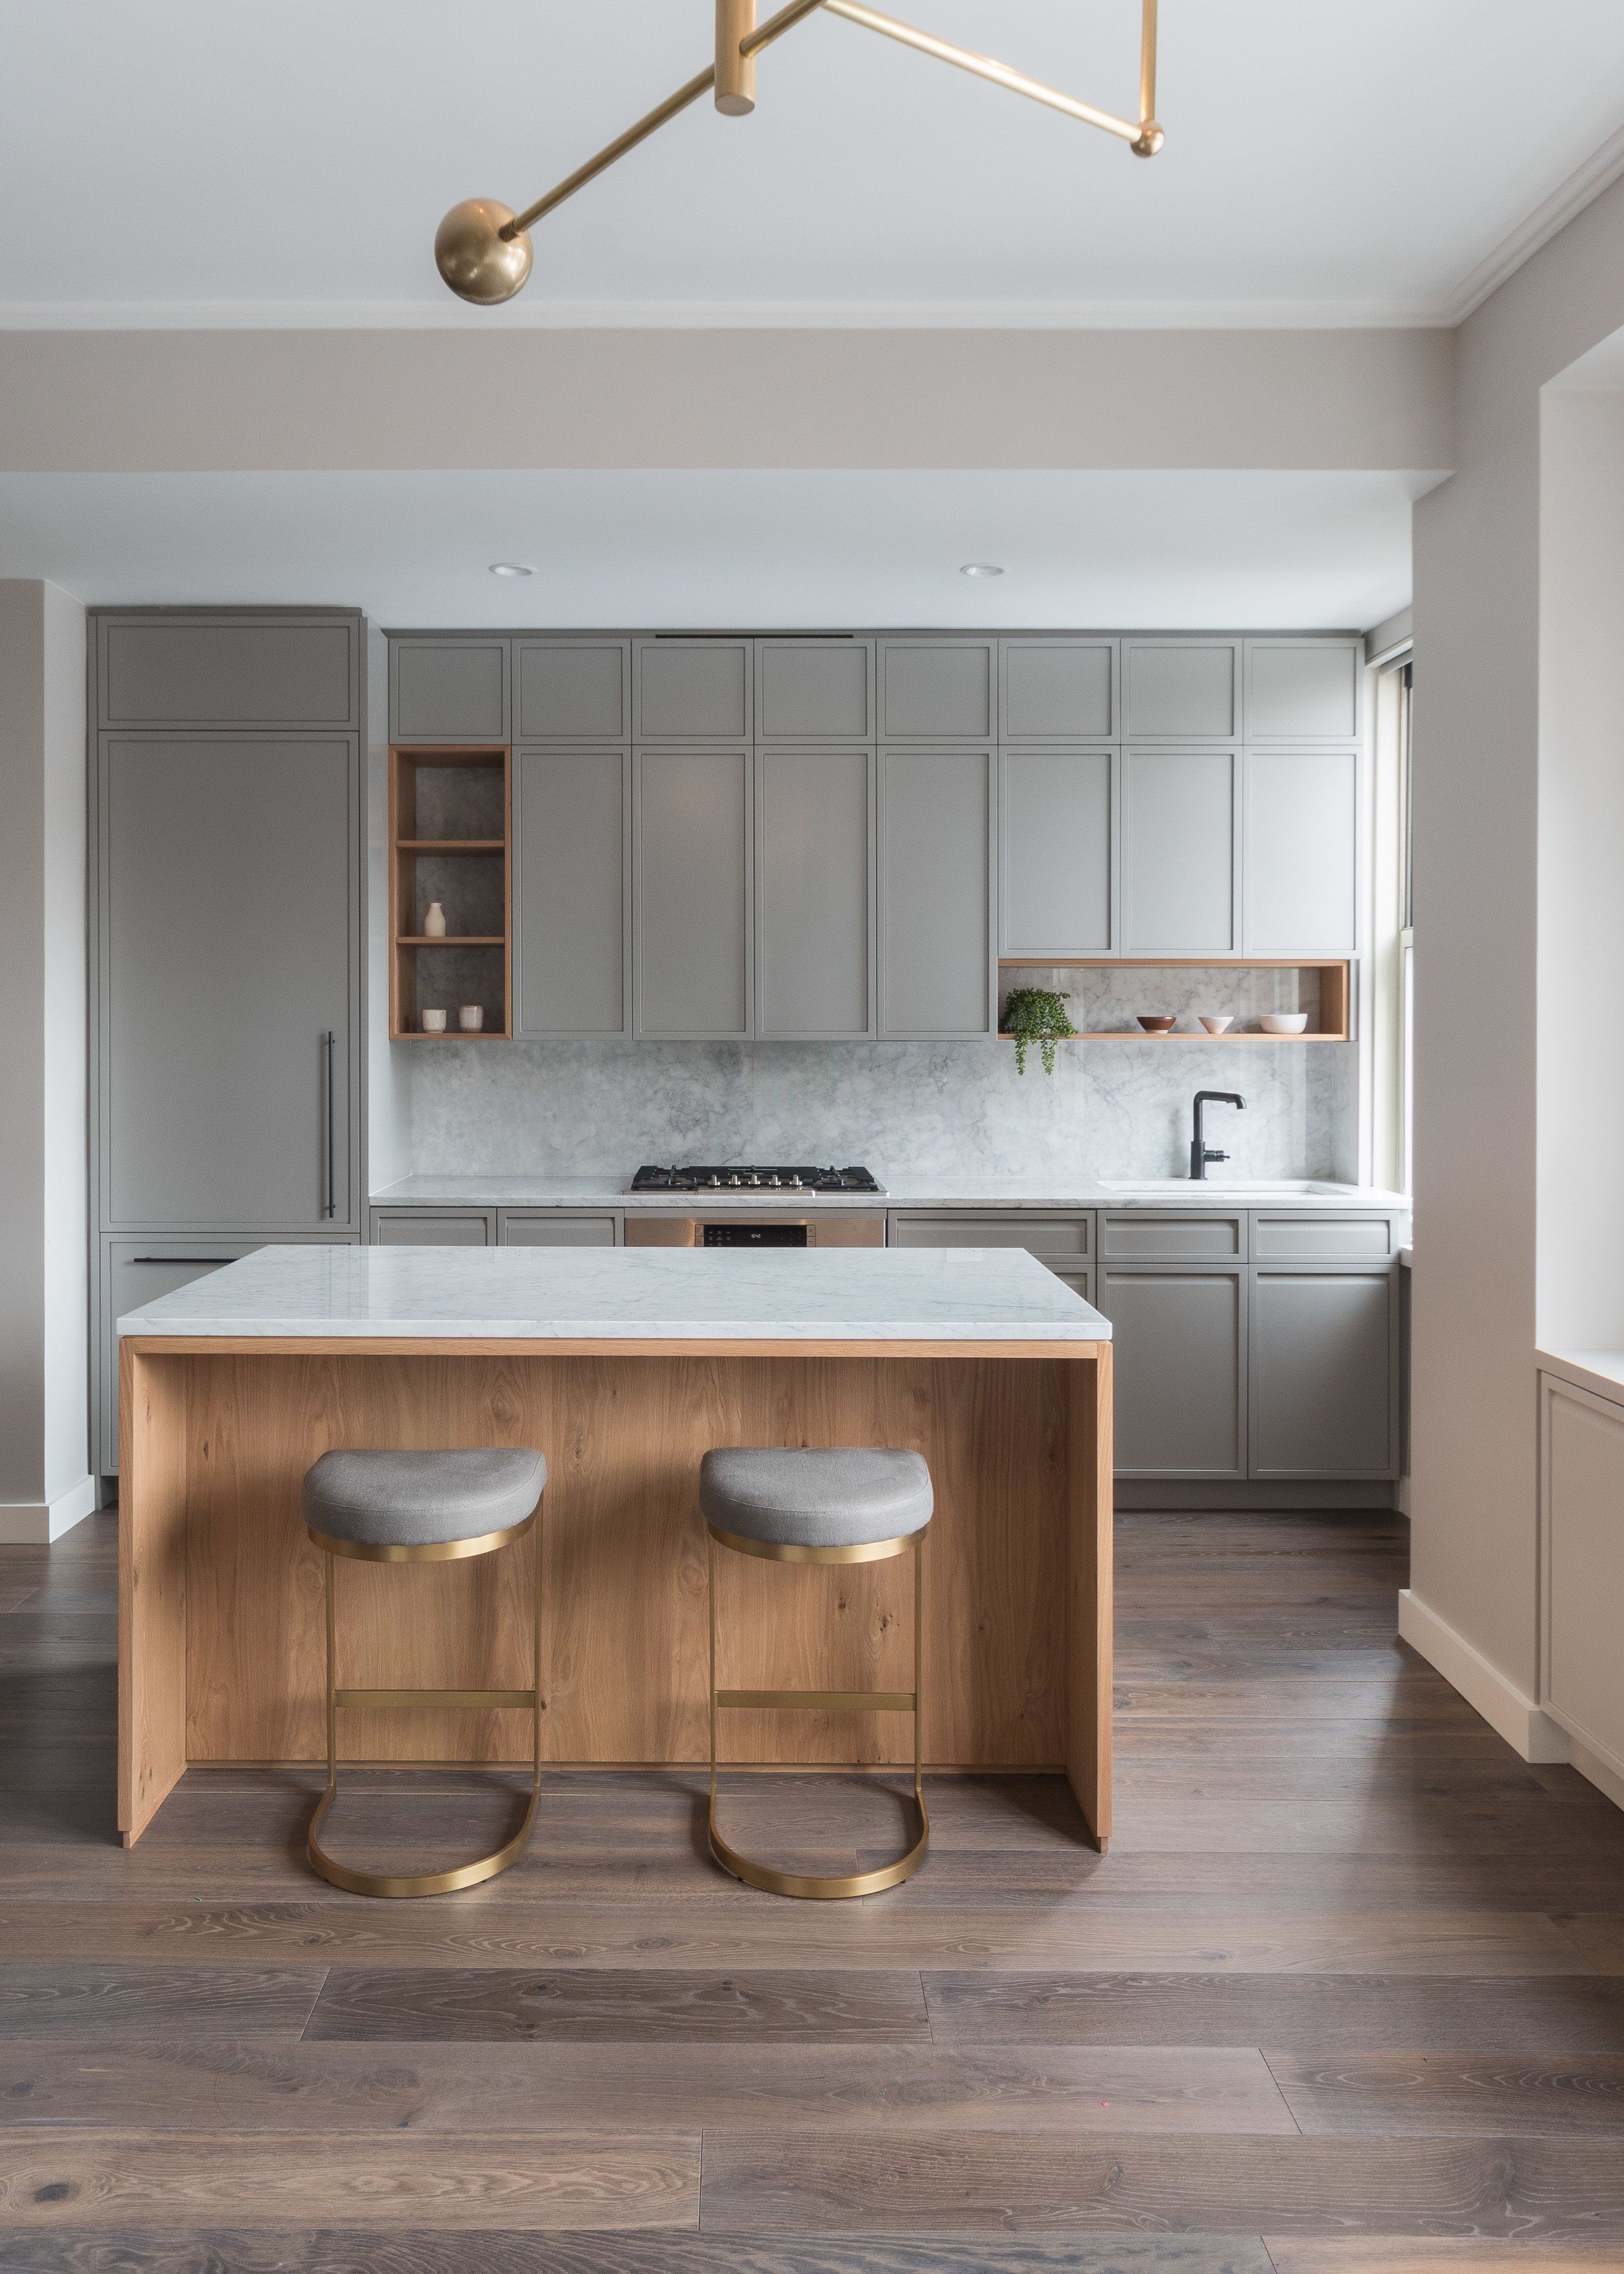 41 Most Popular Two Tone Kitchen Cabinets For 2018 These Minimalist Kitchen Suggestions Are Equ Kitchen Remodel Small Home Decor Kitchen Minimalist Kitchen